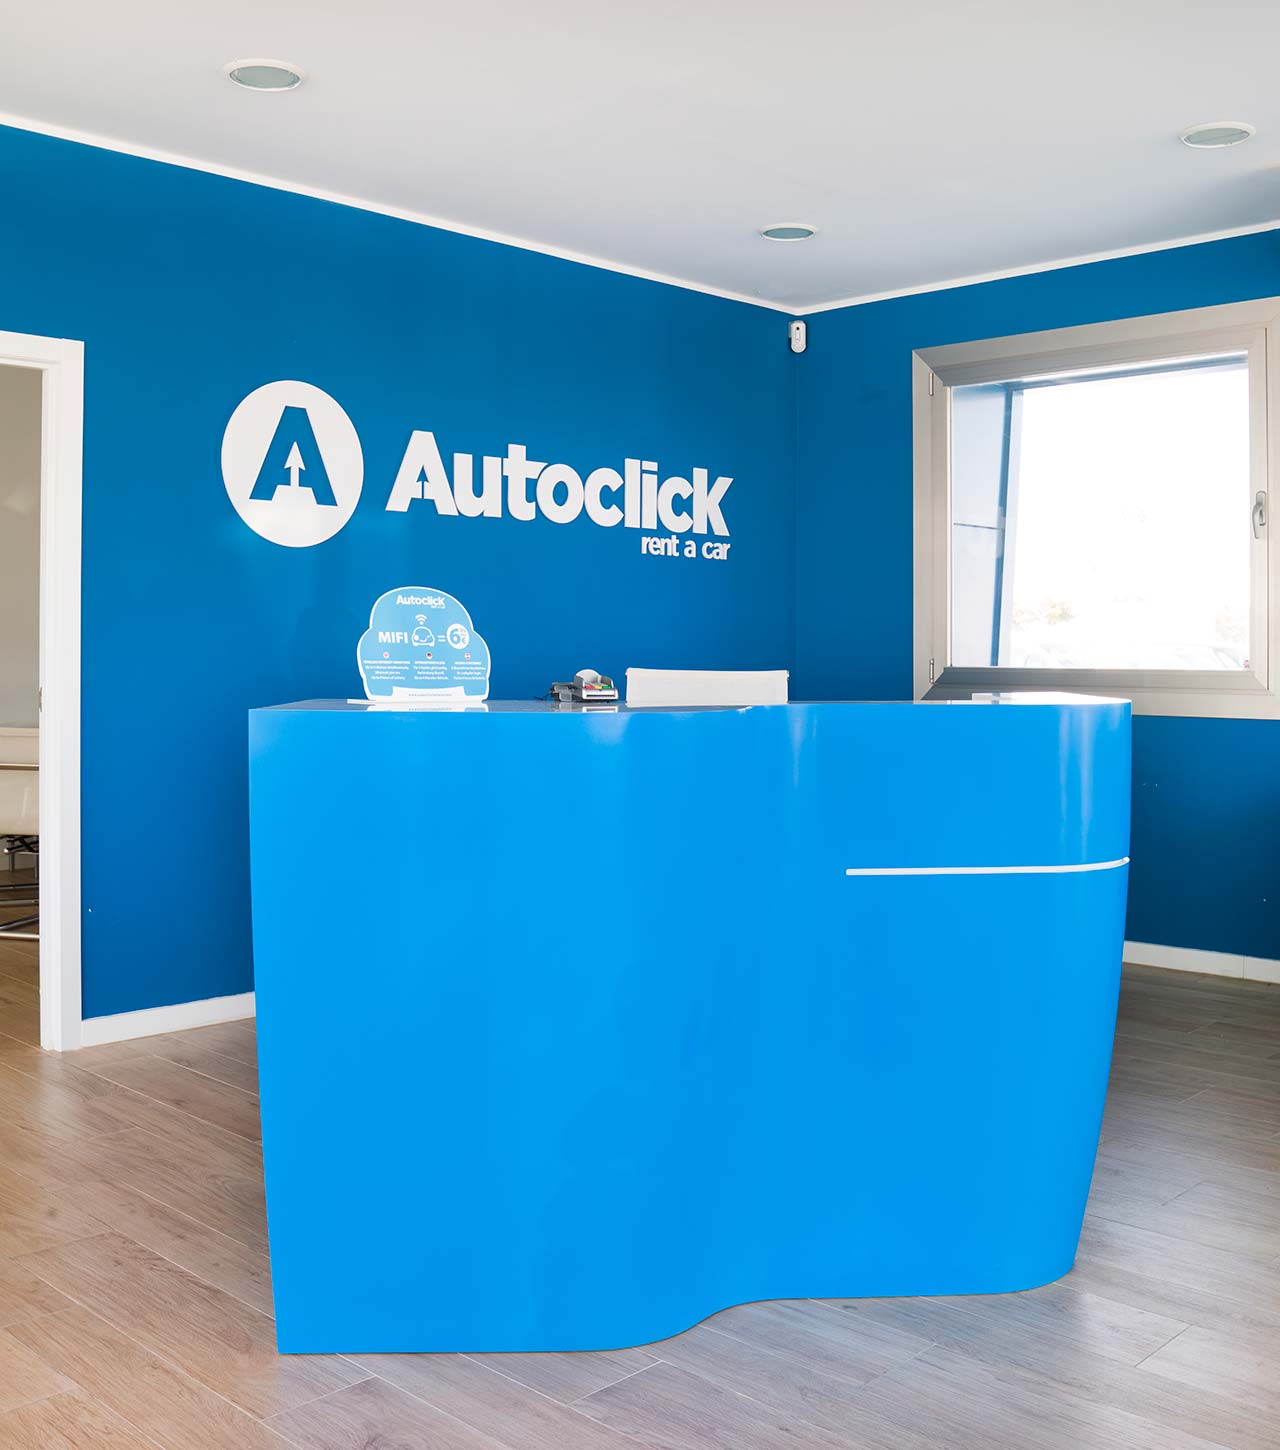 autoclick rent a car - palma de mallorca - españa. Solid Surface  Транспорт